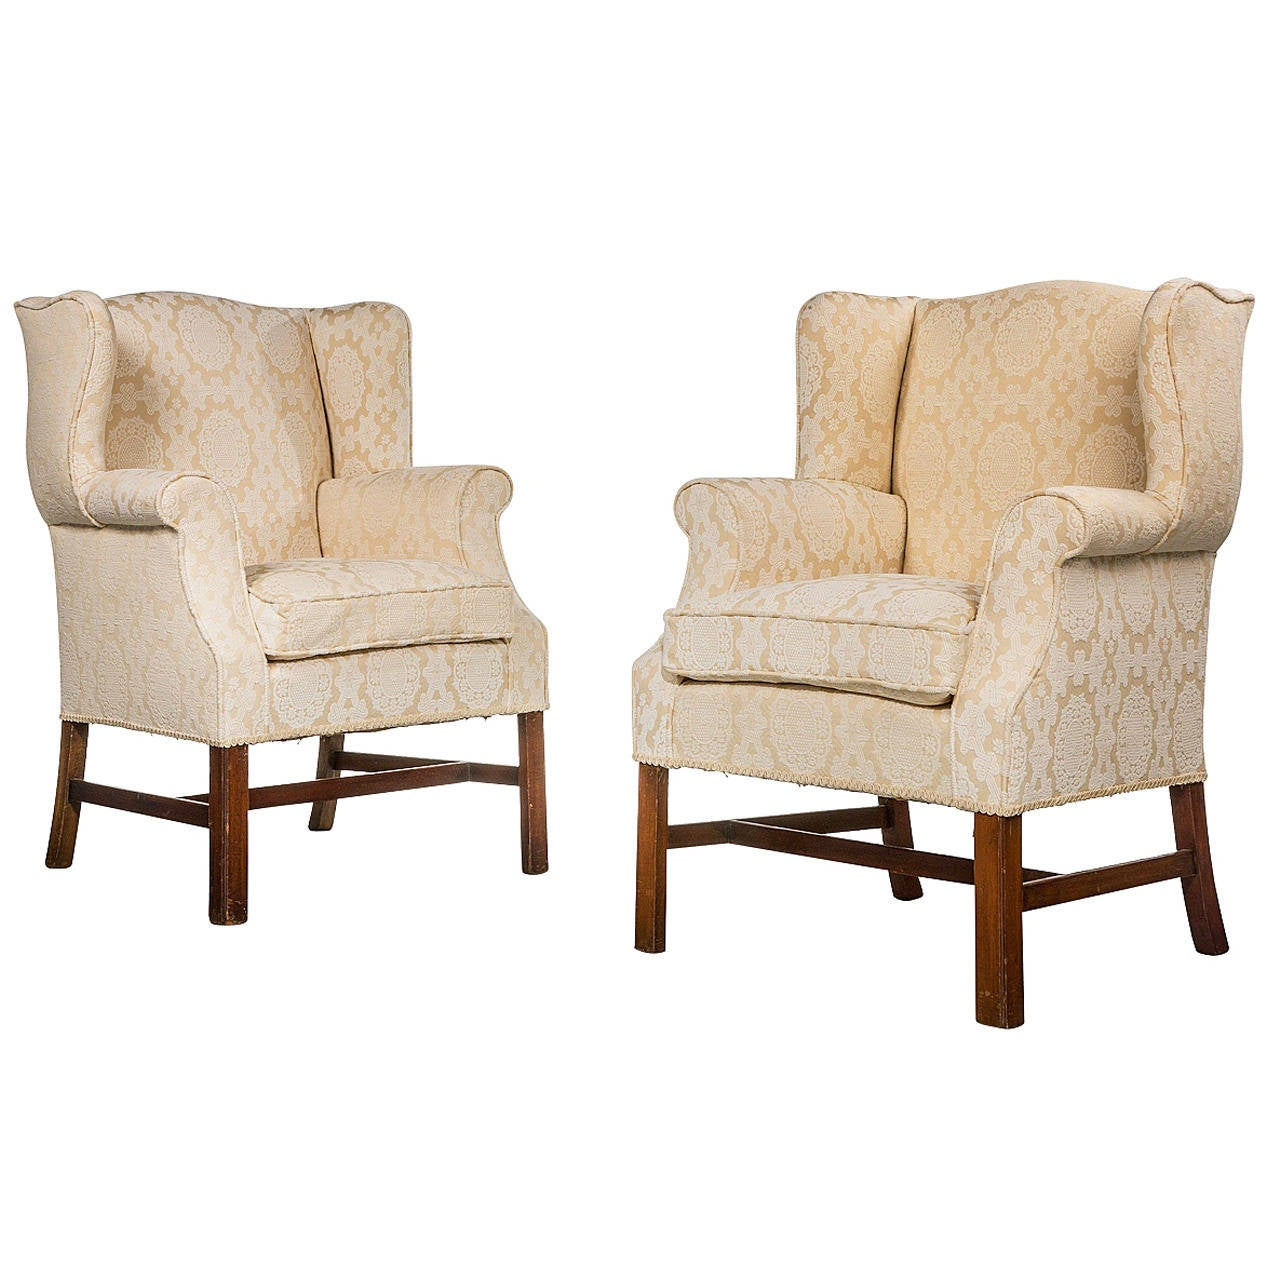 Pair of George III Style Wing Chairs For Sale at 1stdibs